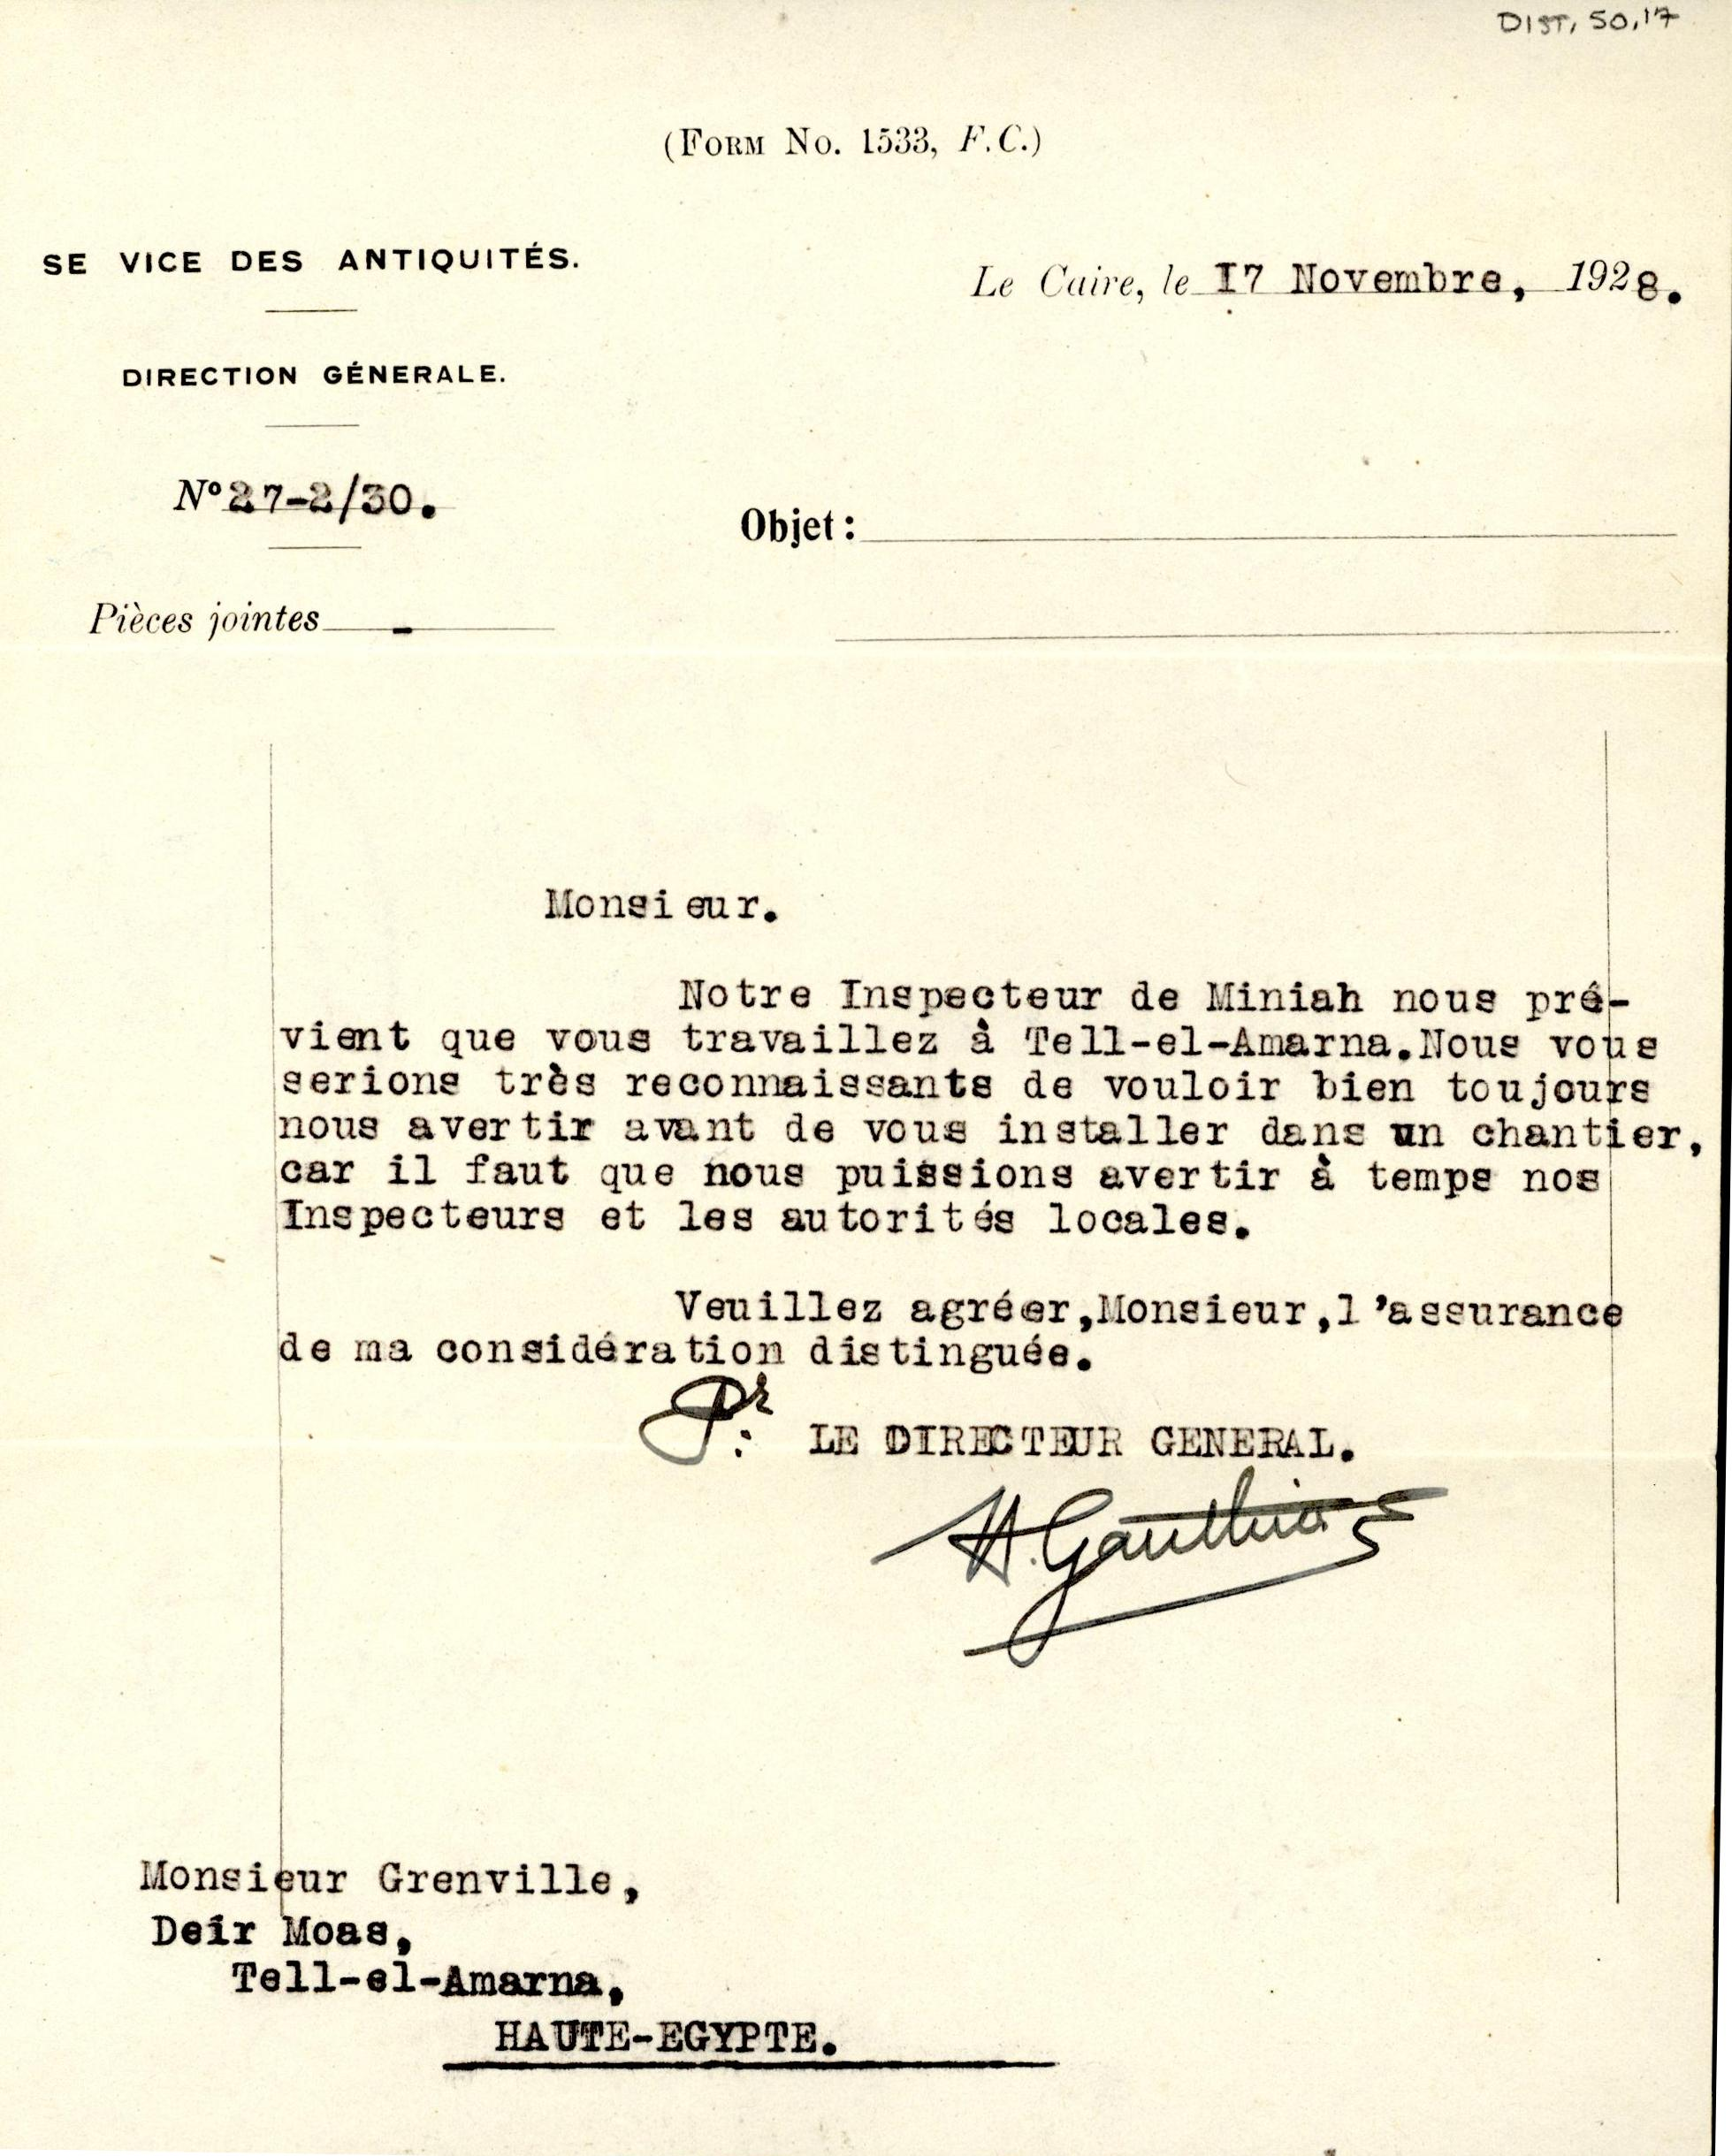 1926-39 correspondence with Antiquities Service DIST.50.17a